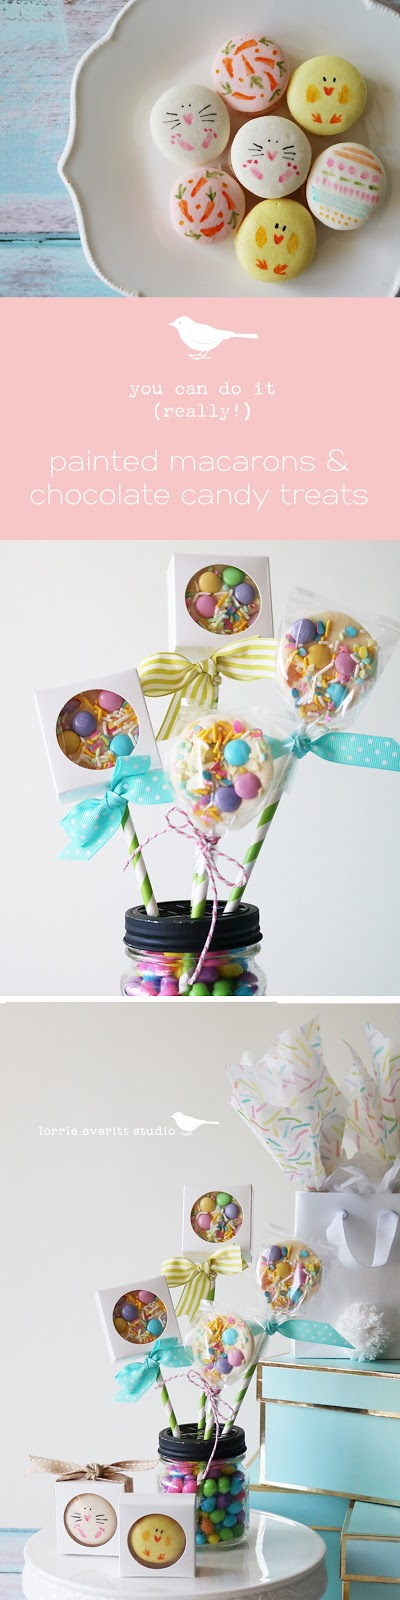 diy sweet ideas for entertaining and favors - painted macarons and chocolate candy sweets | Lorrie Everitt Studio